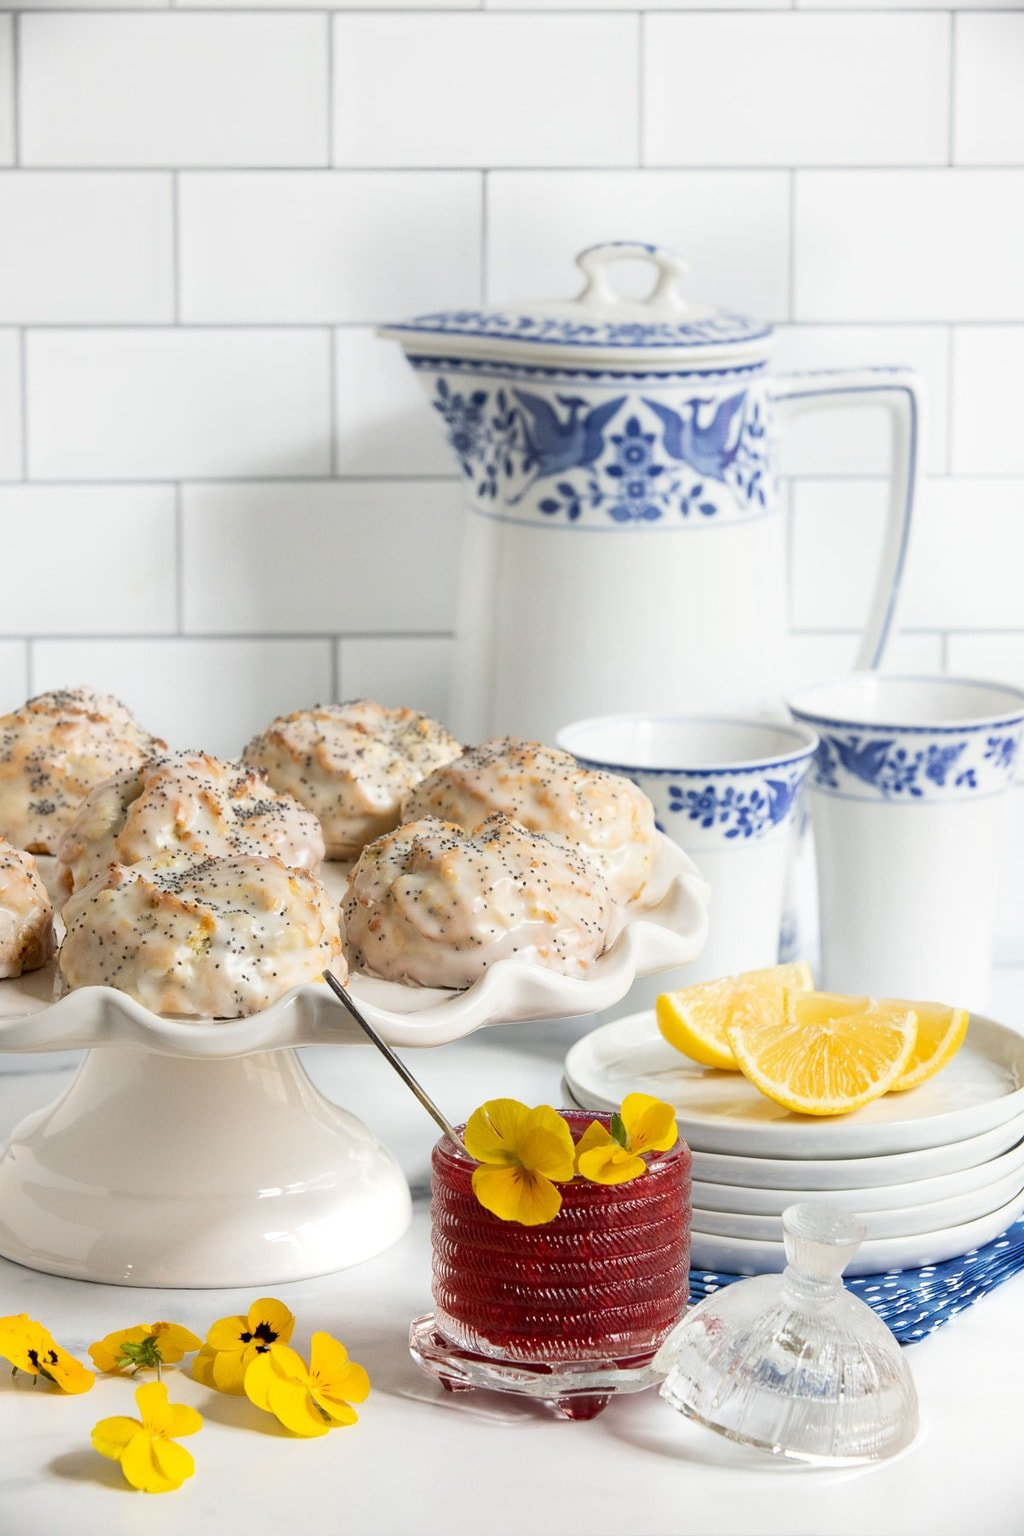 Vertical photo of a batch of Ridiculously Easy Lemon Poppy Seed Scones on a white scalloped pedestal serving plate with a small jar of Raspberry Freezer jam in the foreground with yellow pansies.